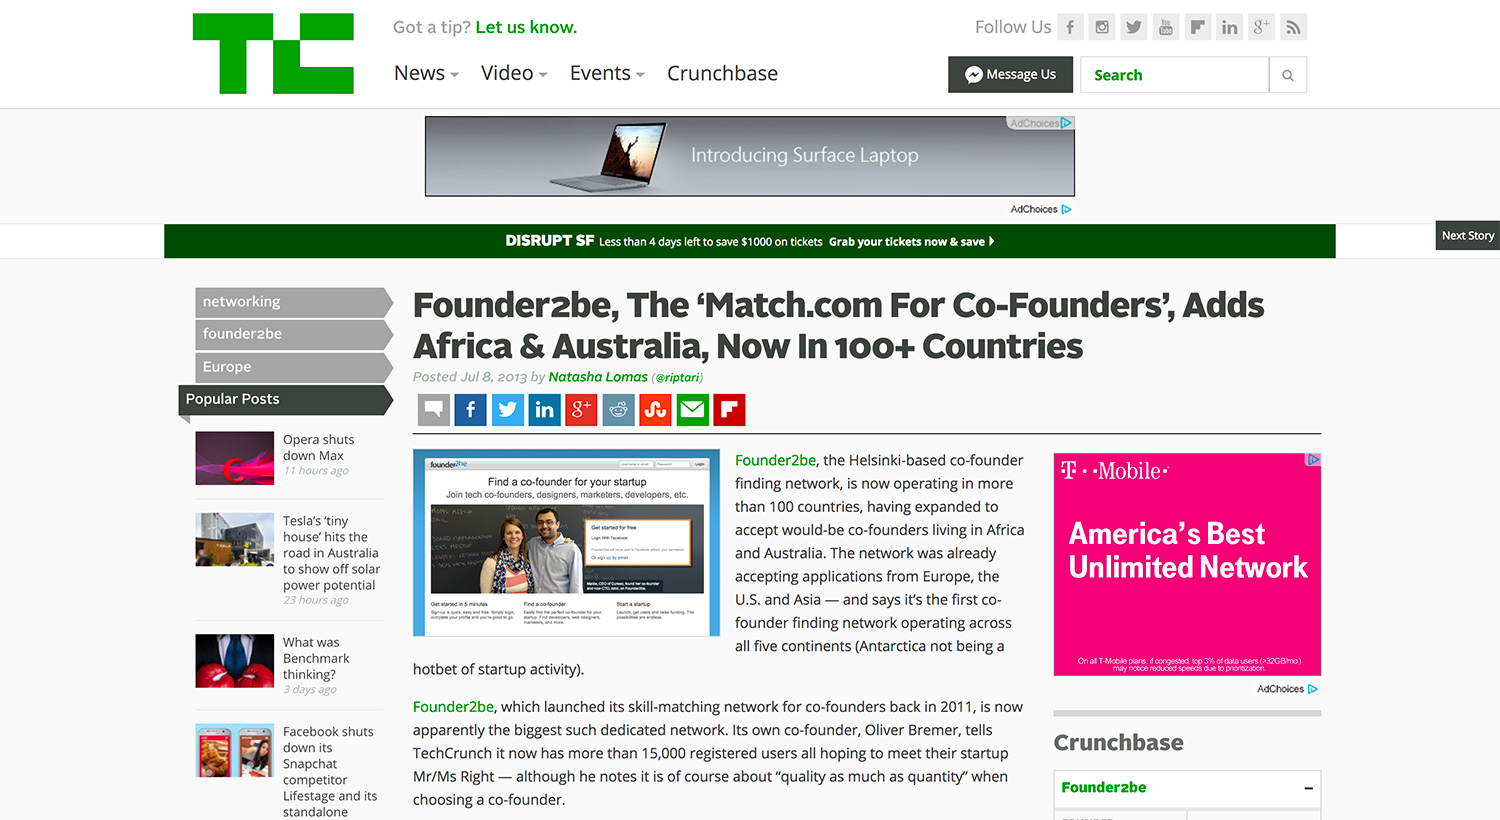 Founderdating techcrunch snapchat